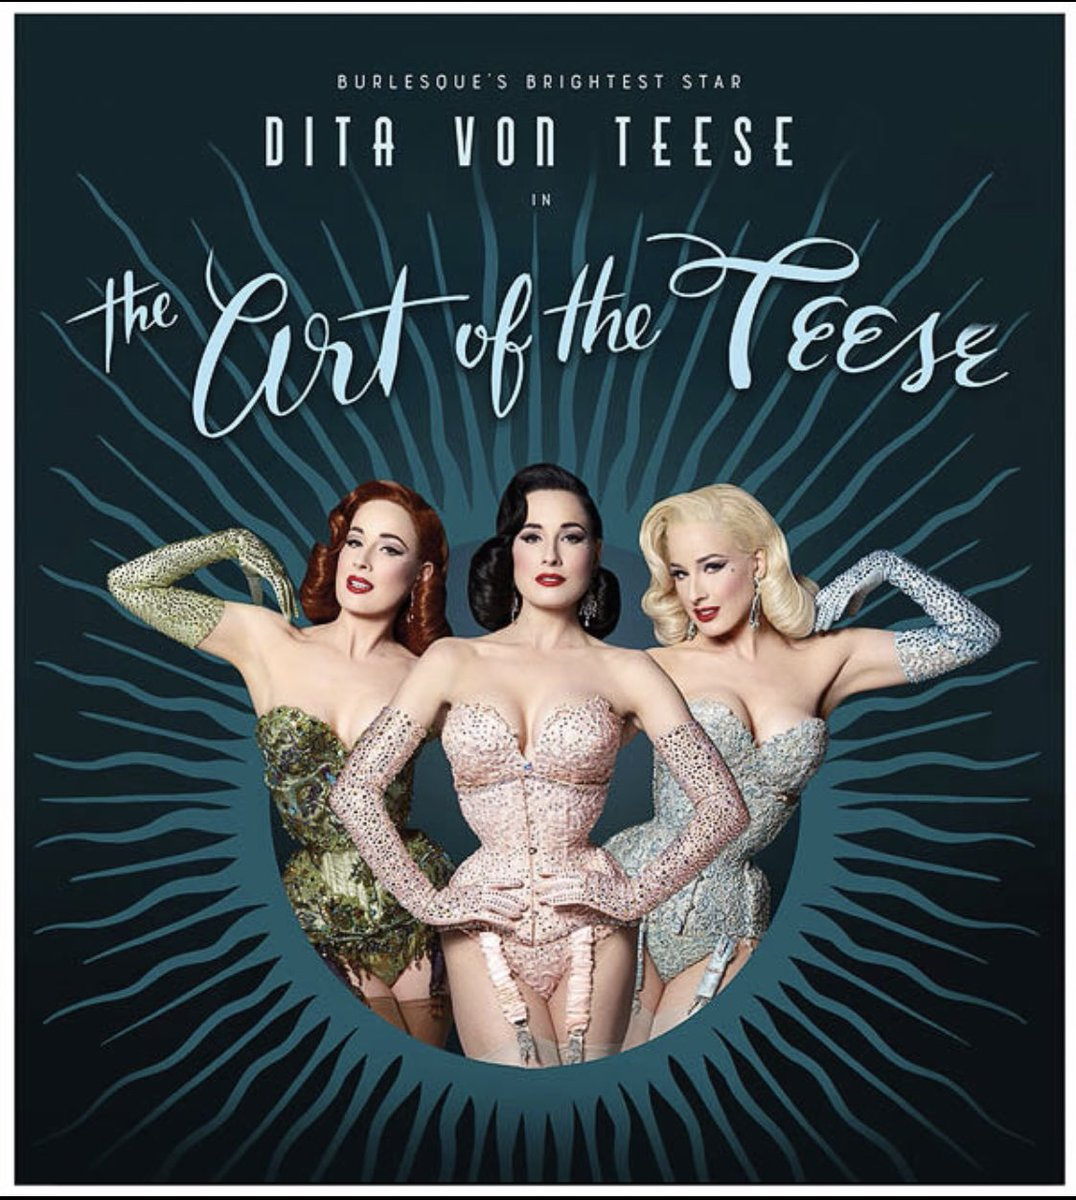 The Art of the Teese #burlesque tour continues! It's going to be a rowdy Monday night here in #Manchester! Next stops: #Geneva, #Lyon, #Paris! Artoftheteese.com for the last seats💋💋